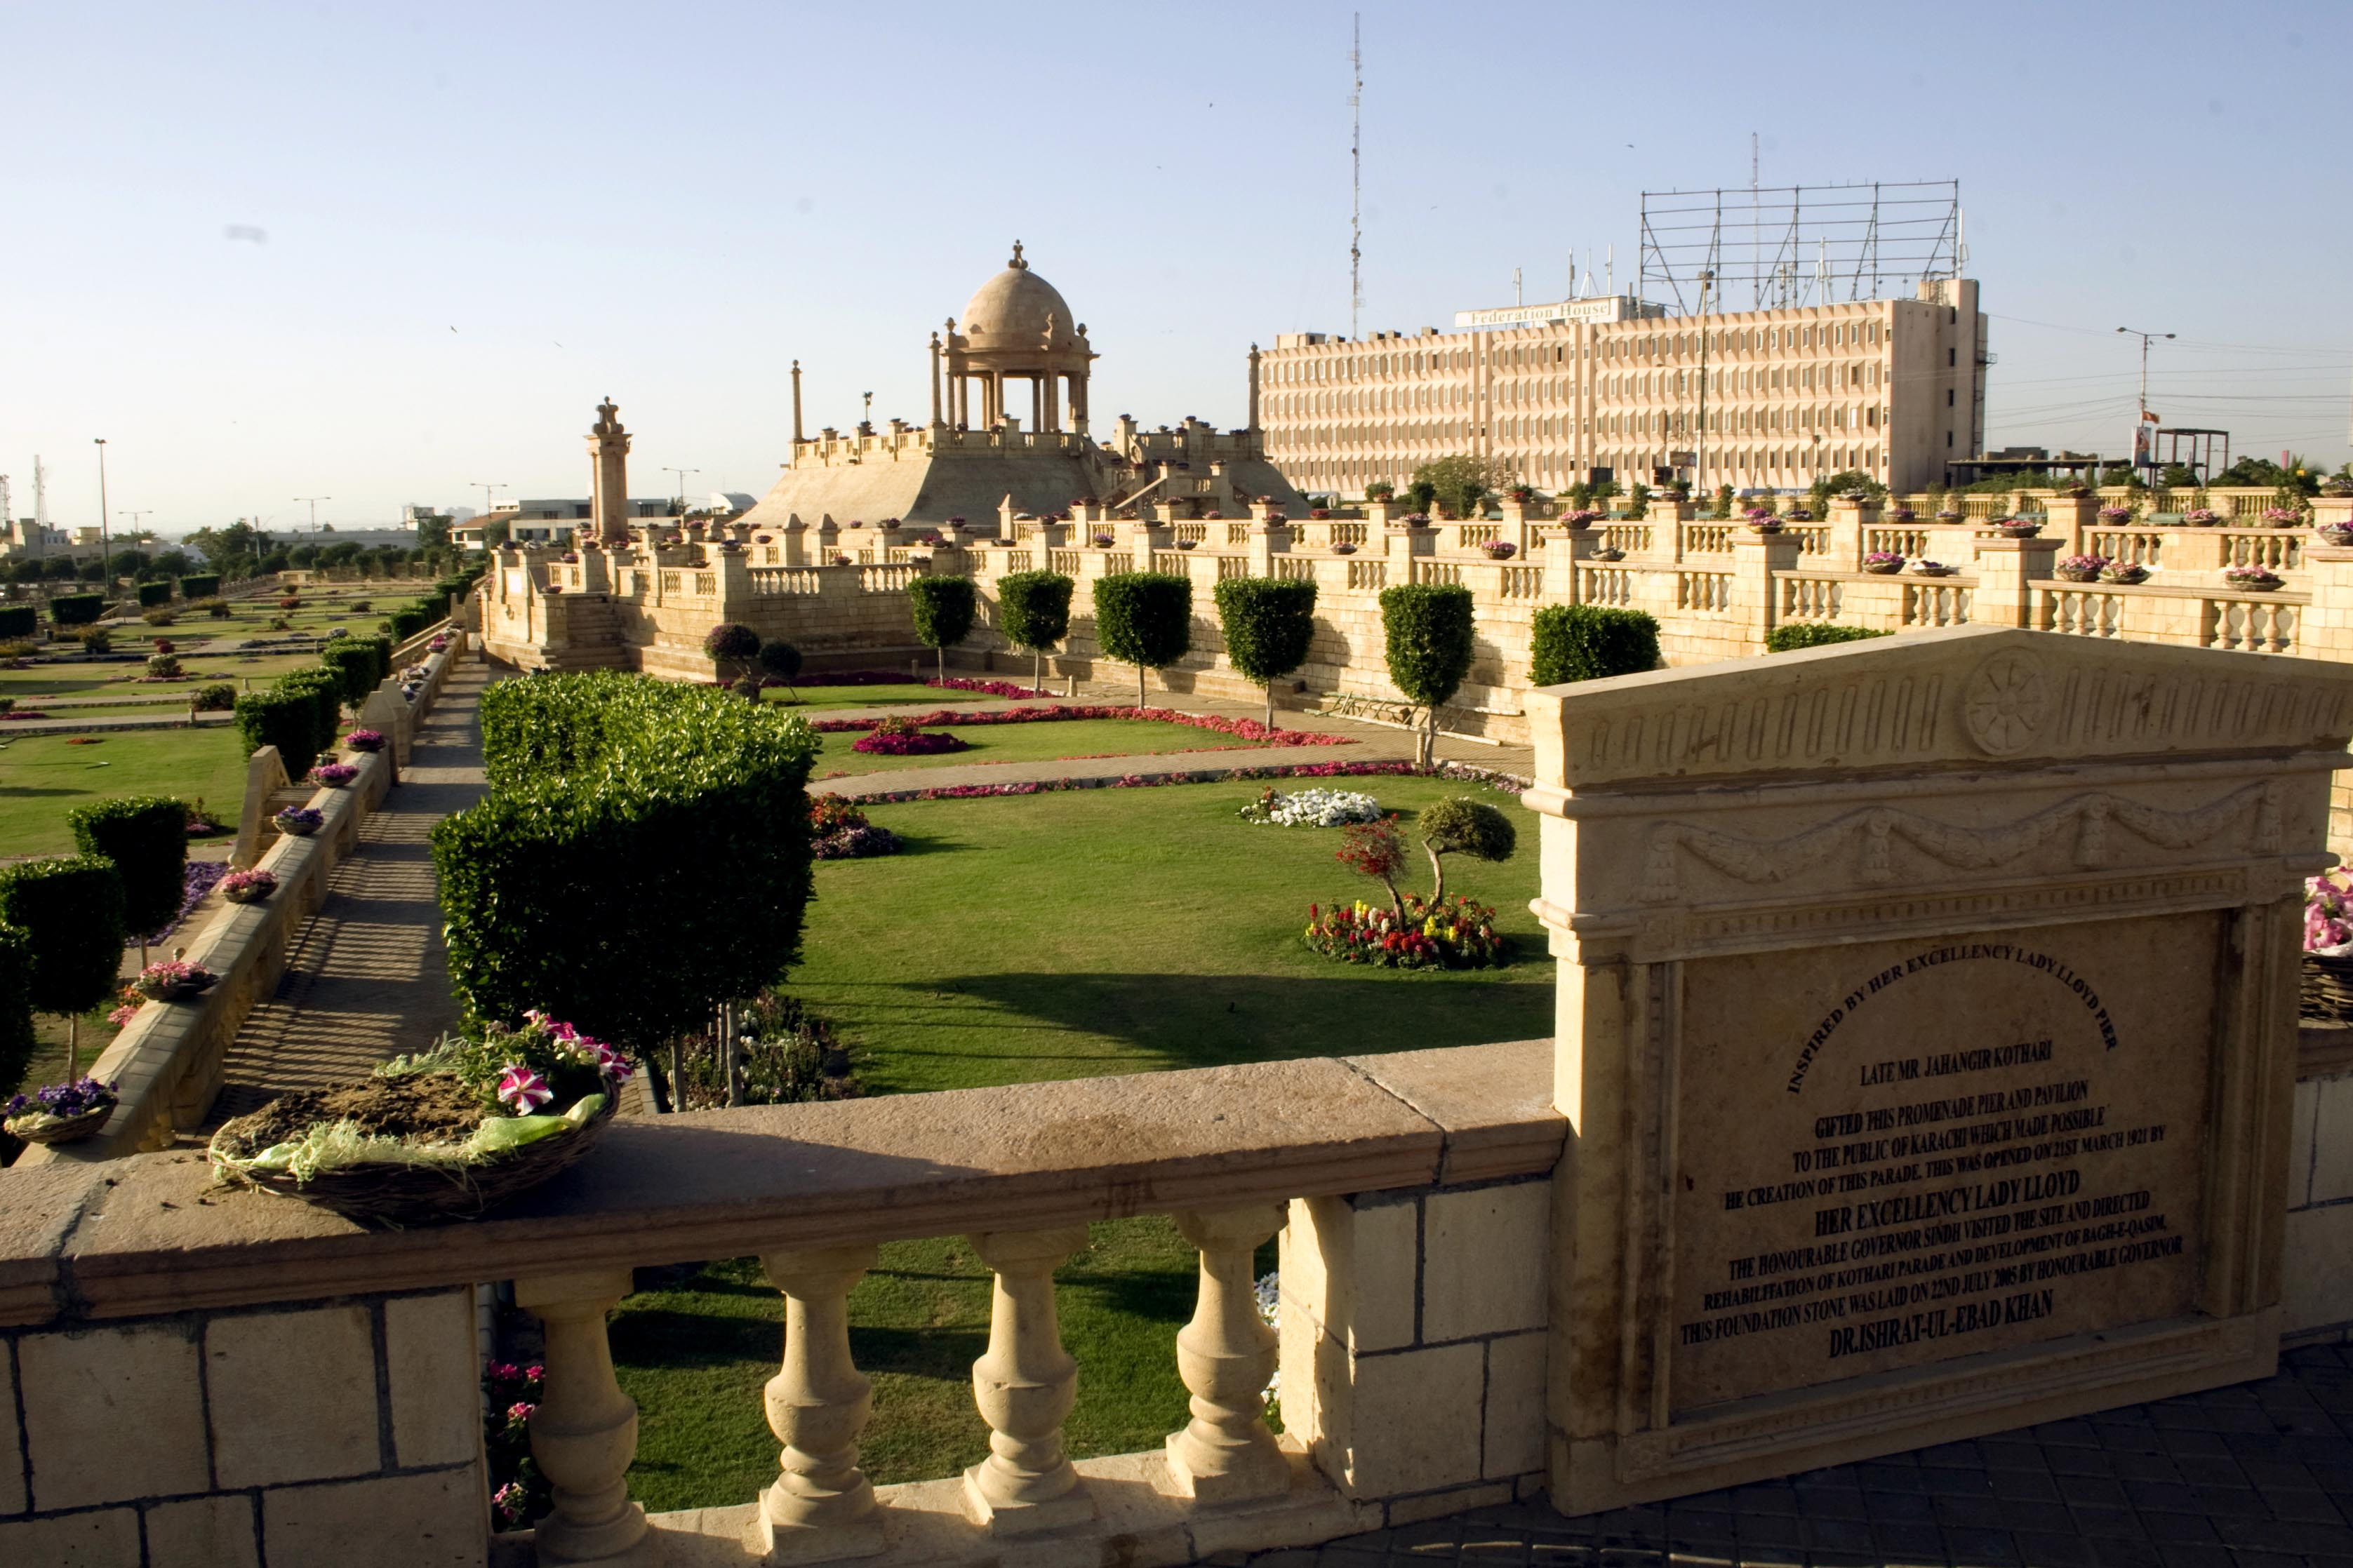 visit to a historical place in karachi Free essays on historical place in karachi similarly we can see many other places of tourist interest and historical importance we can also visit places.